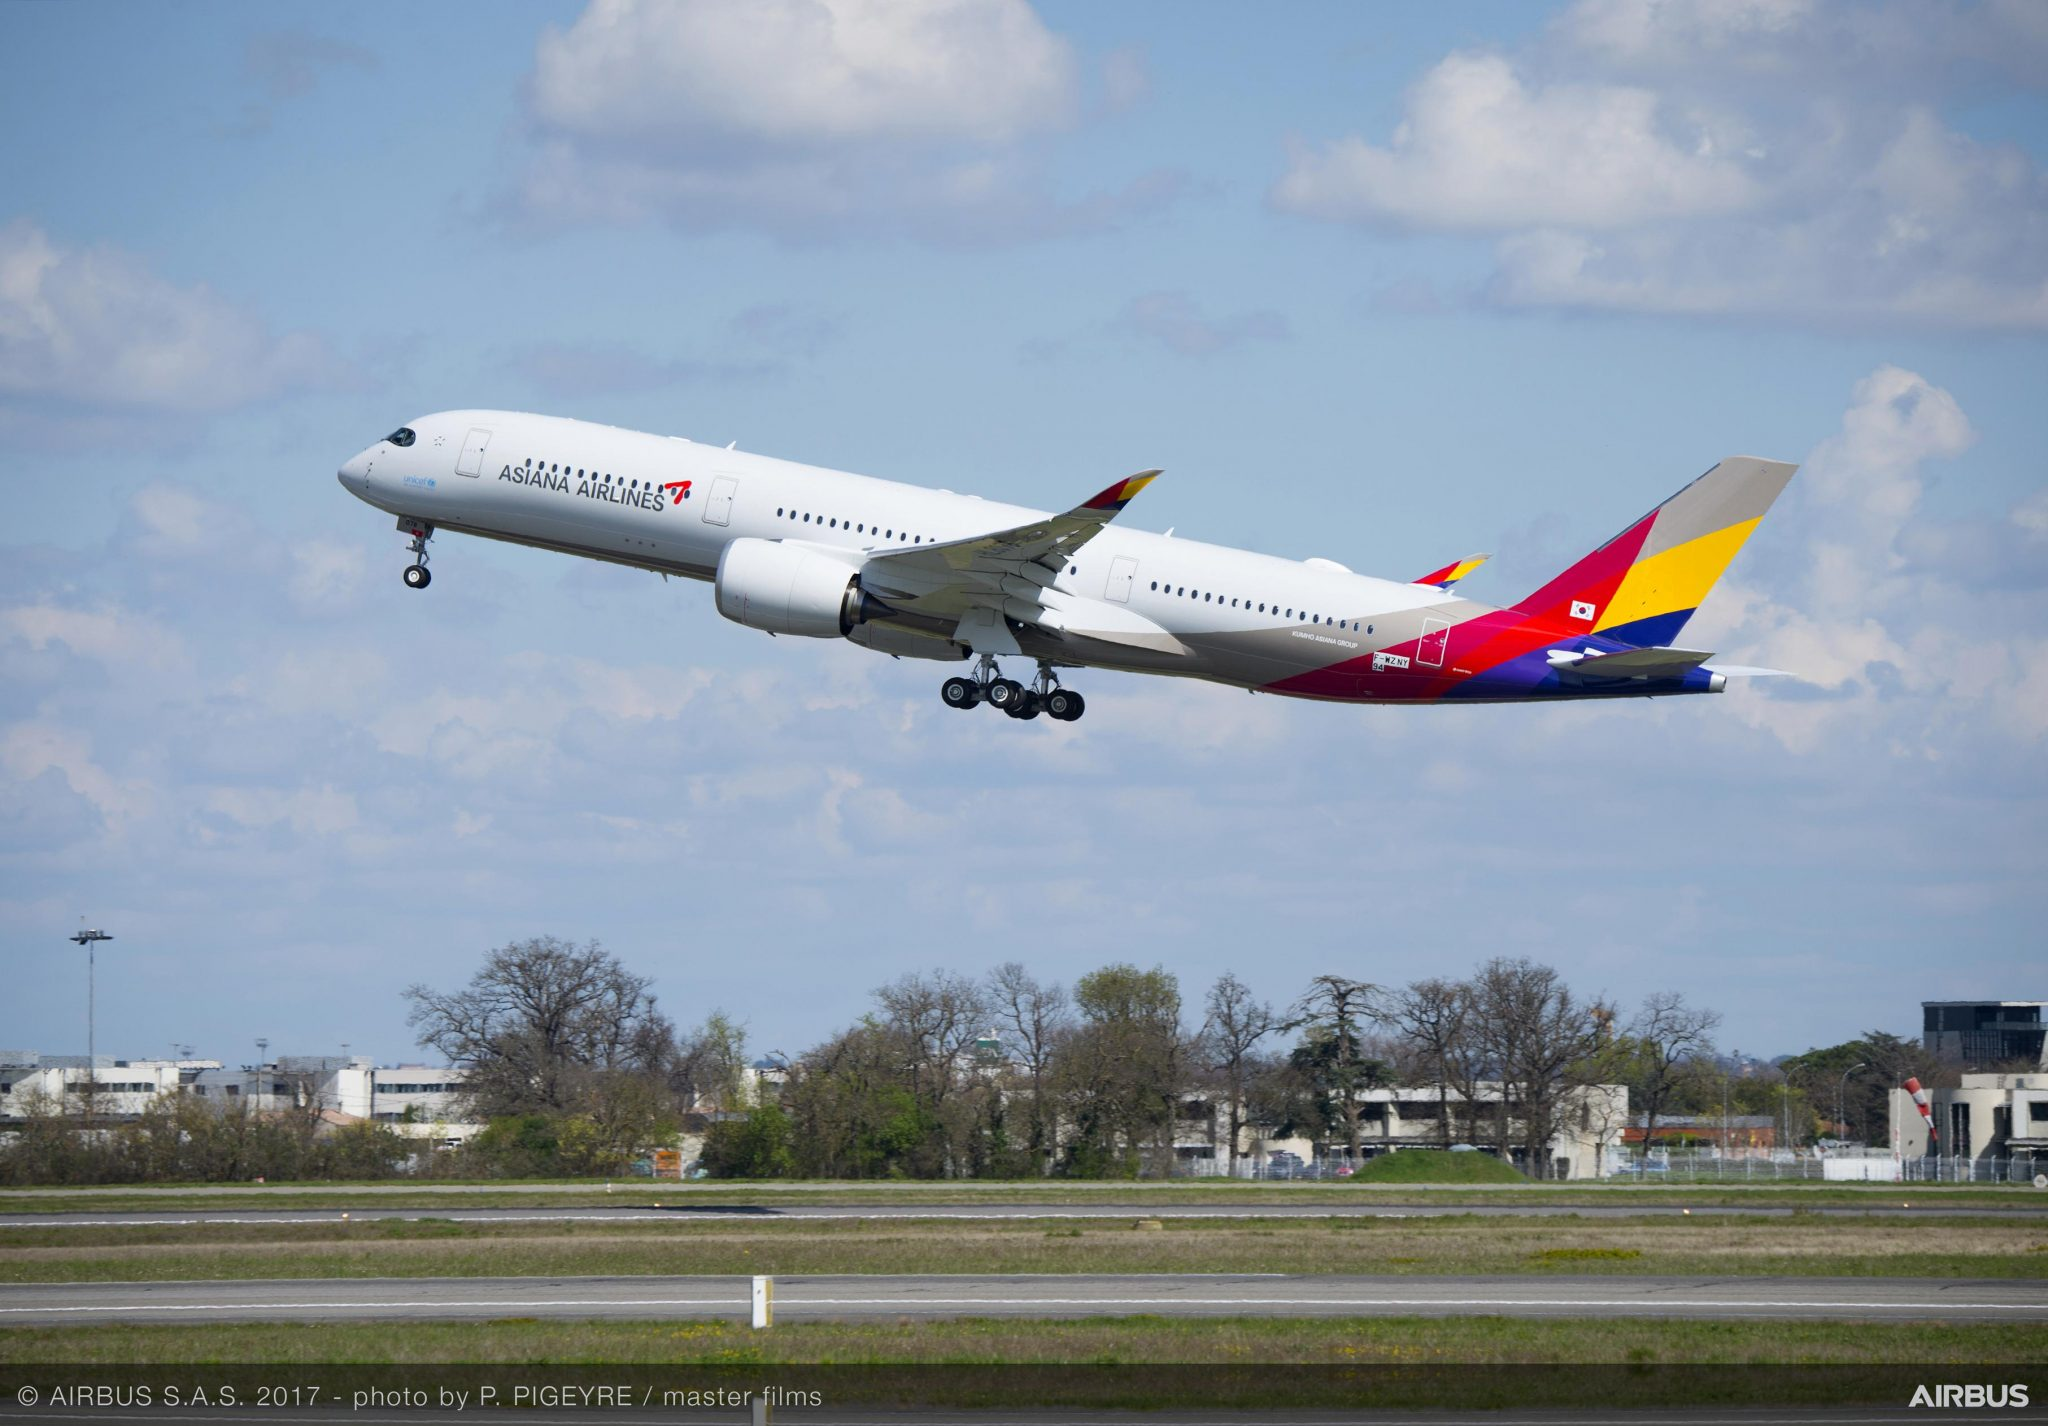 Asiana Airlines A350s take off with Panasonic Avionics